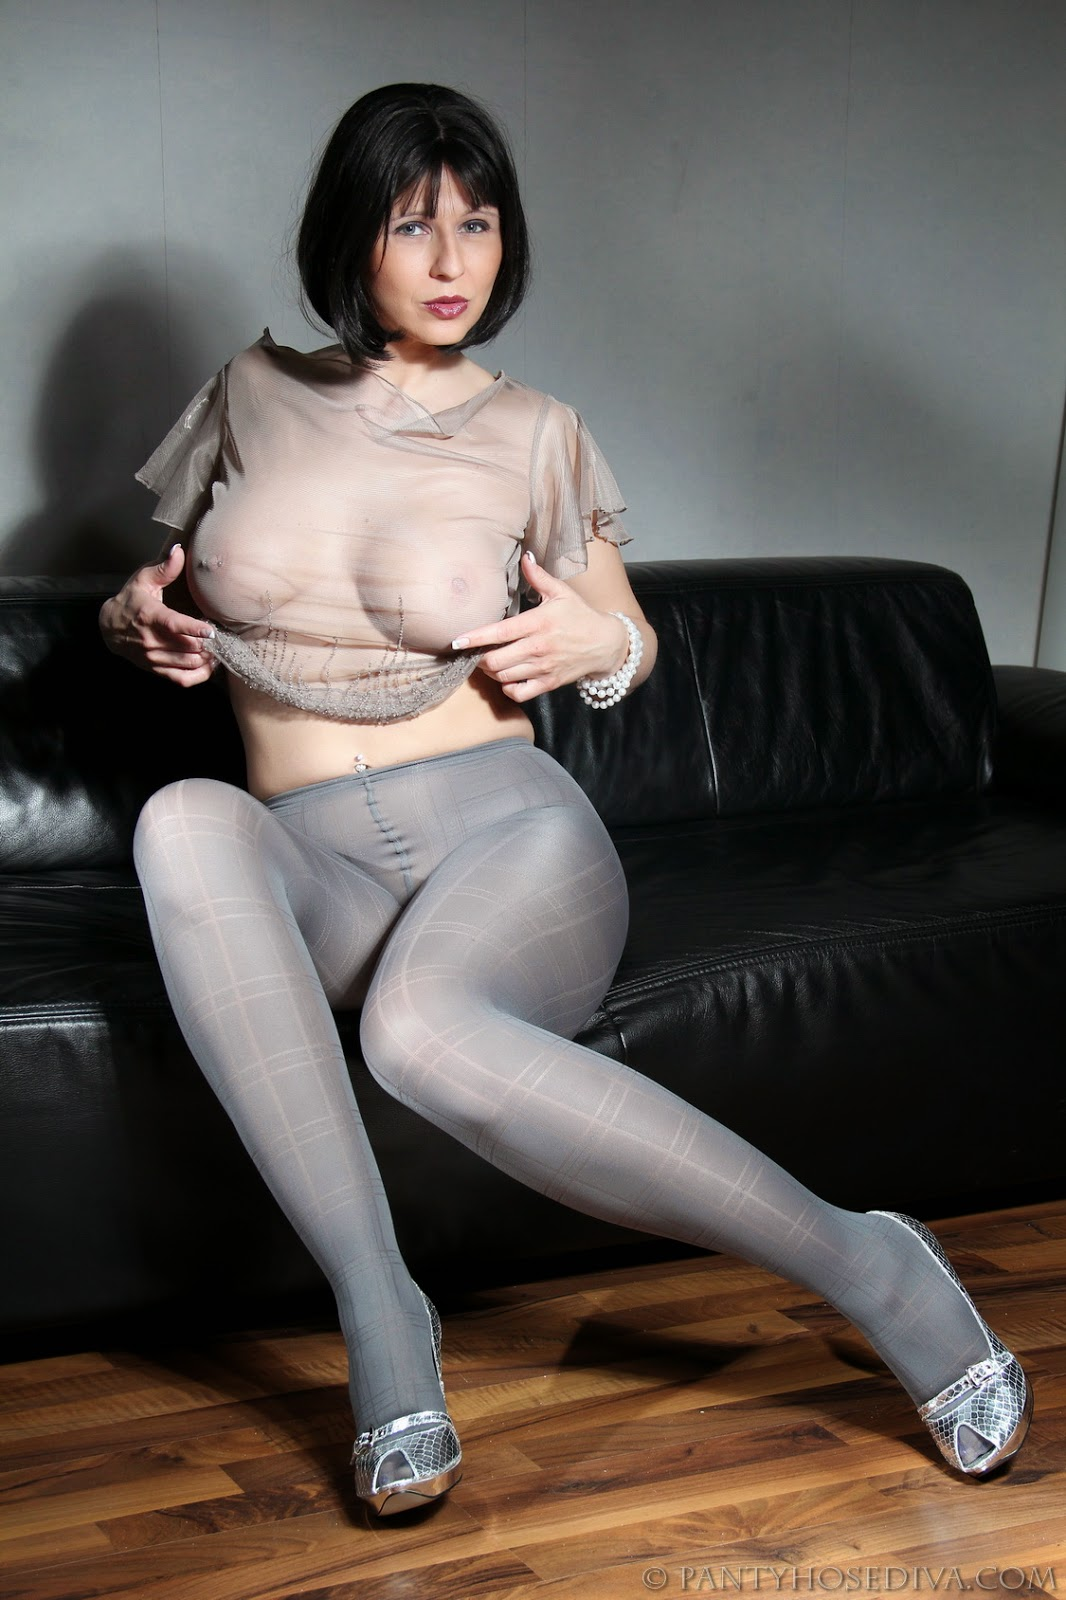 Matures And Pantyhose Results 56